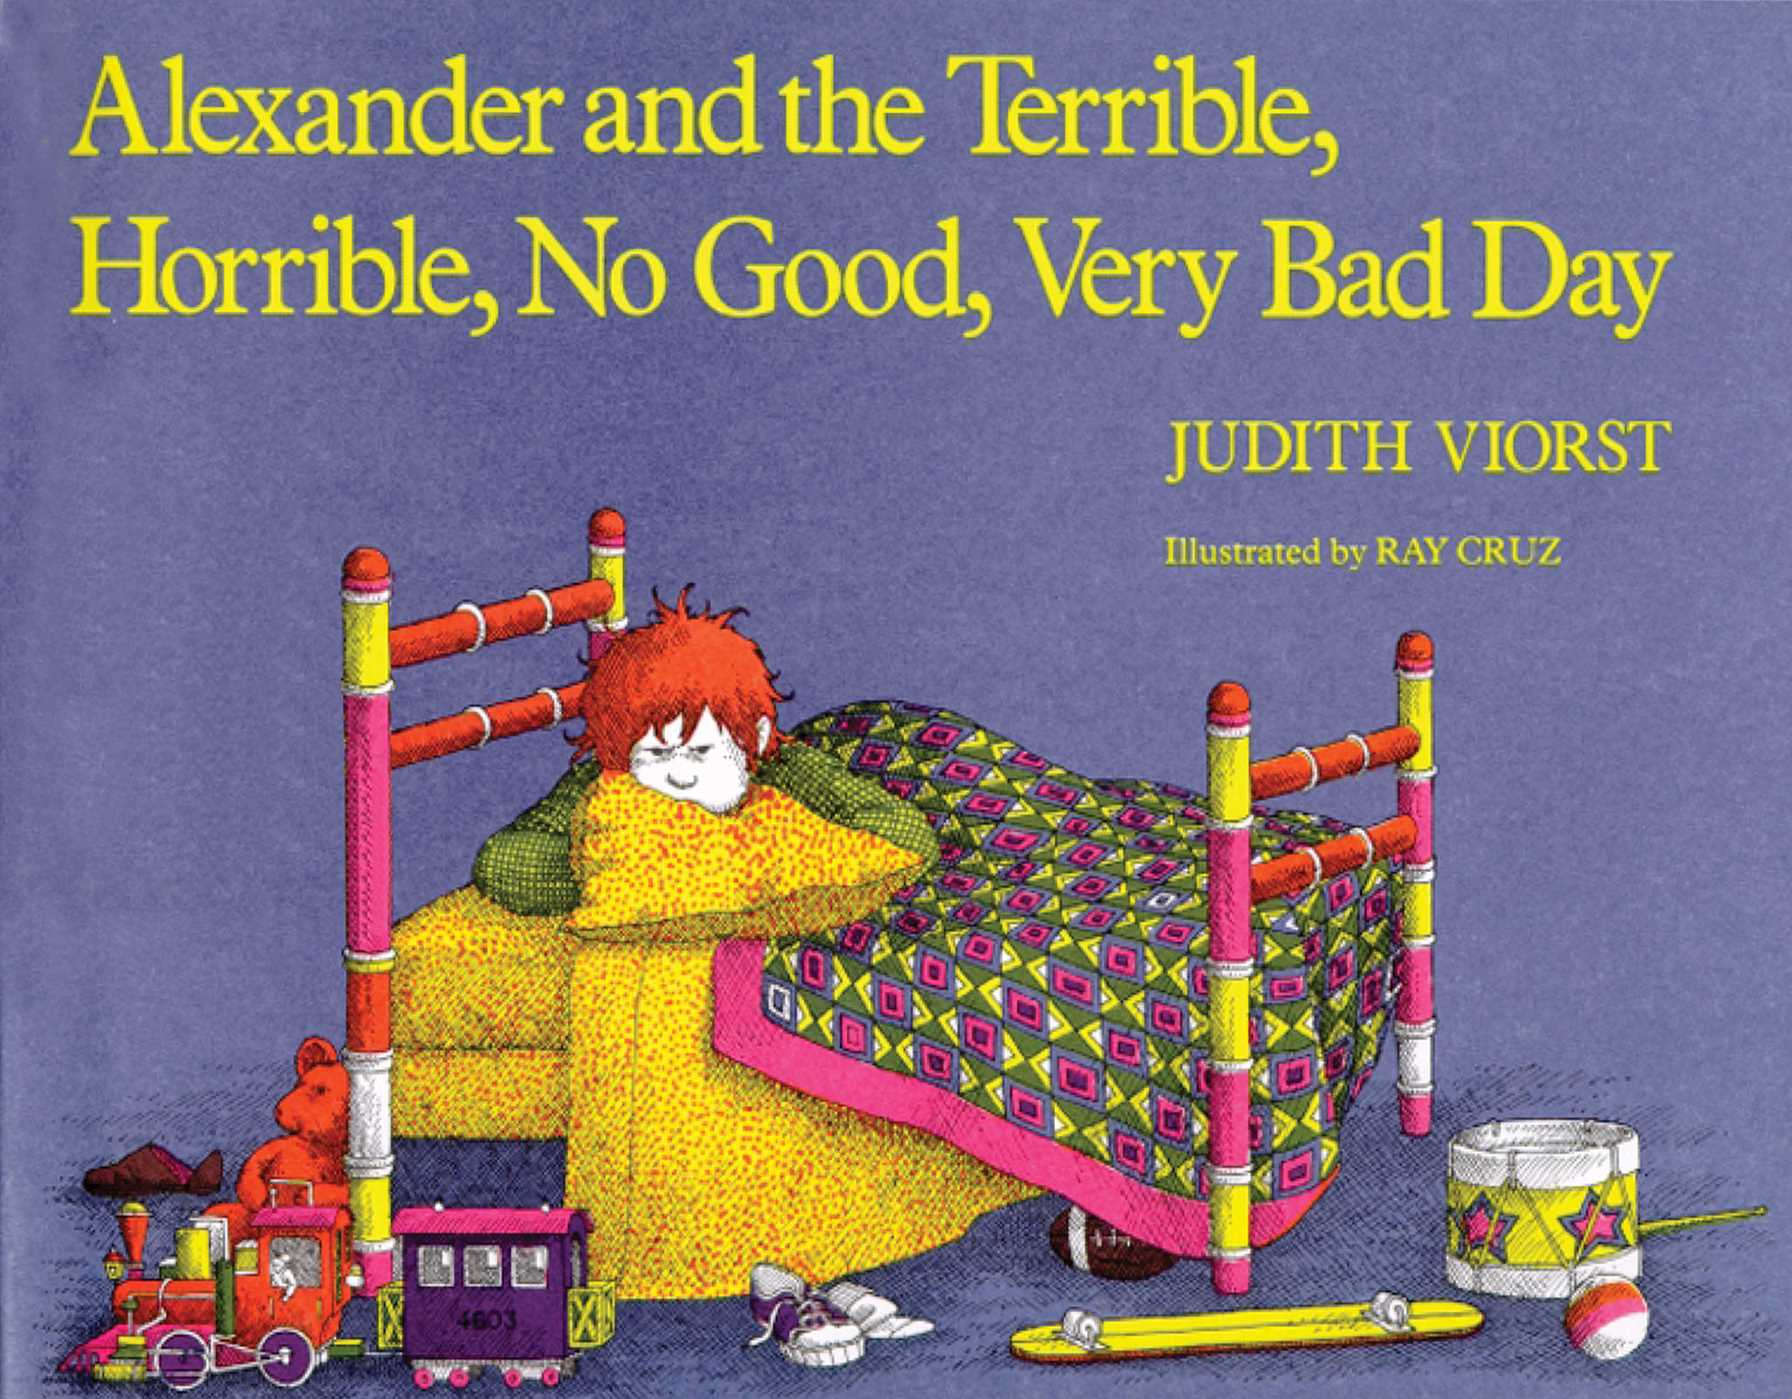 Alexander and the terrible horrible no good very bad day 9780689300721 hr